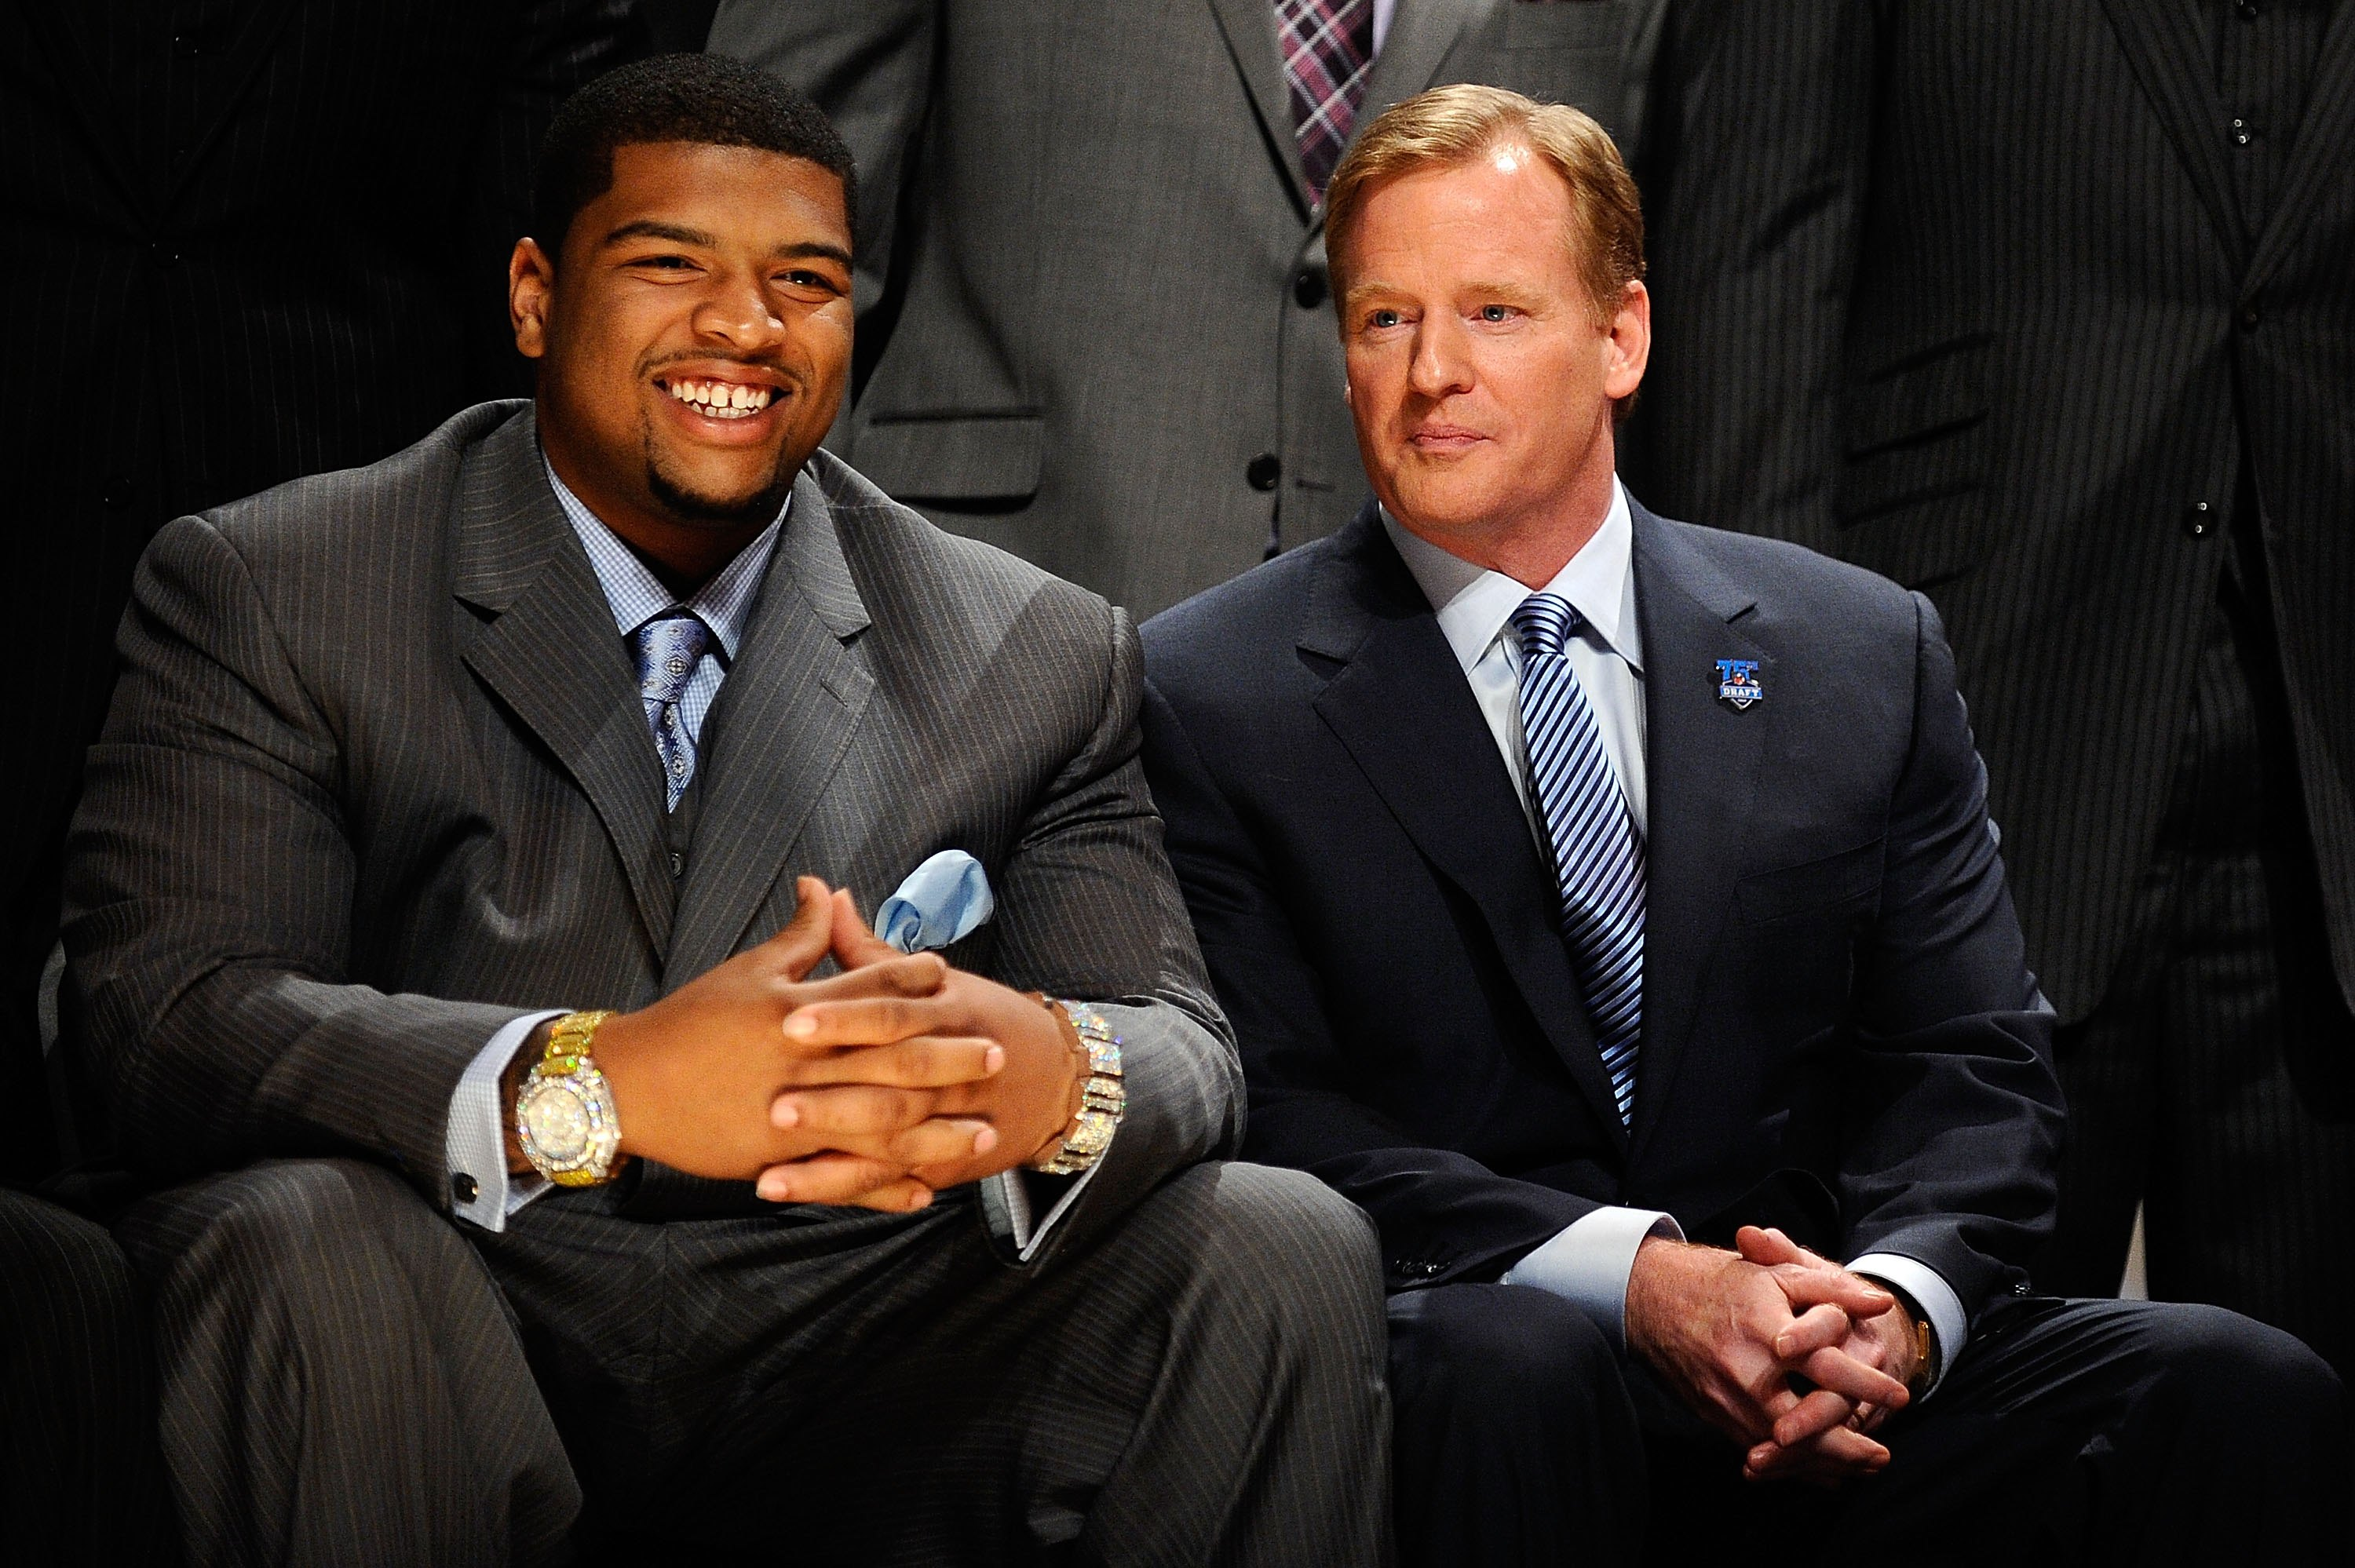 NEW YORK - APRIL 22:  Trent Williams from the Oklahoma Sooners (who was drafted #4 overall by the Washington Redskins) sits with NFL Commissioner Roger Goodell (R) during the first round of the 2010 NFL Draft at Radio City Music Hall on April 22, 2010 in